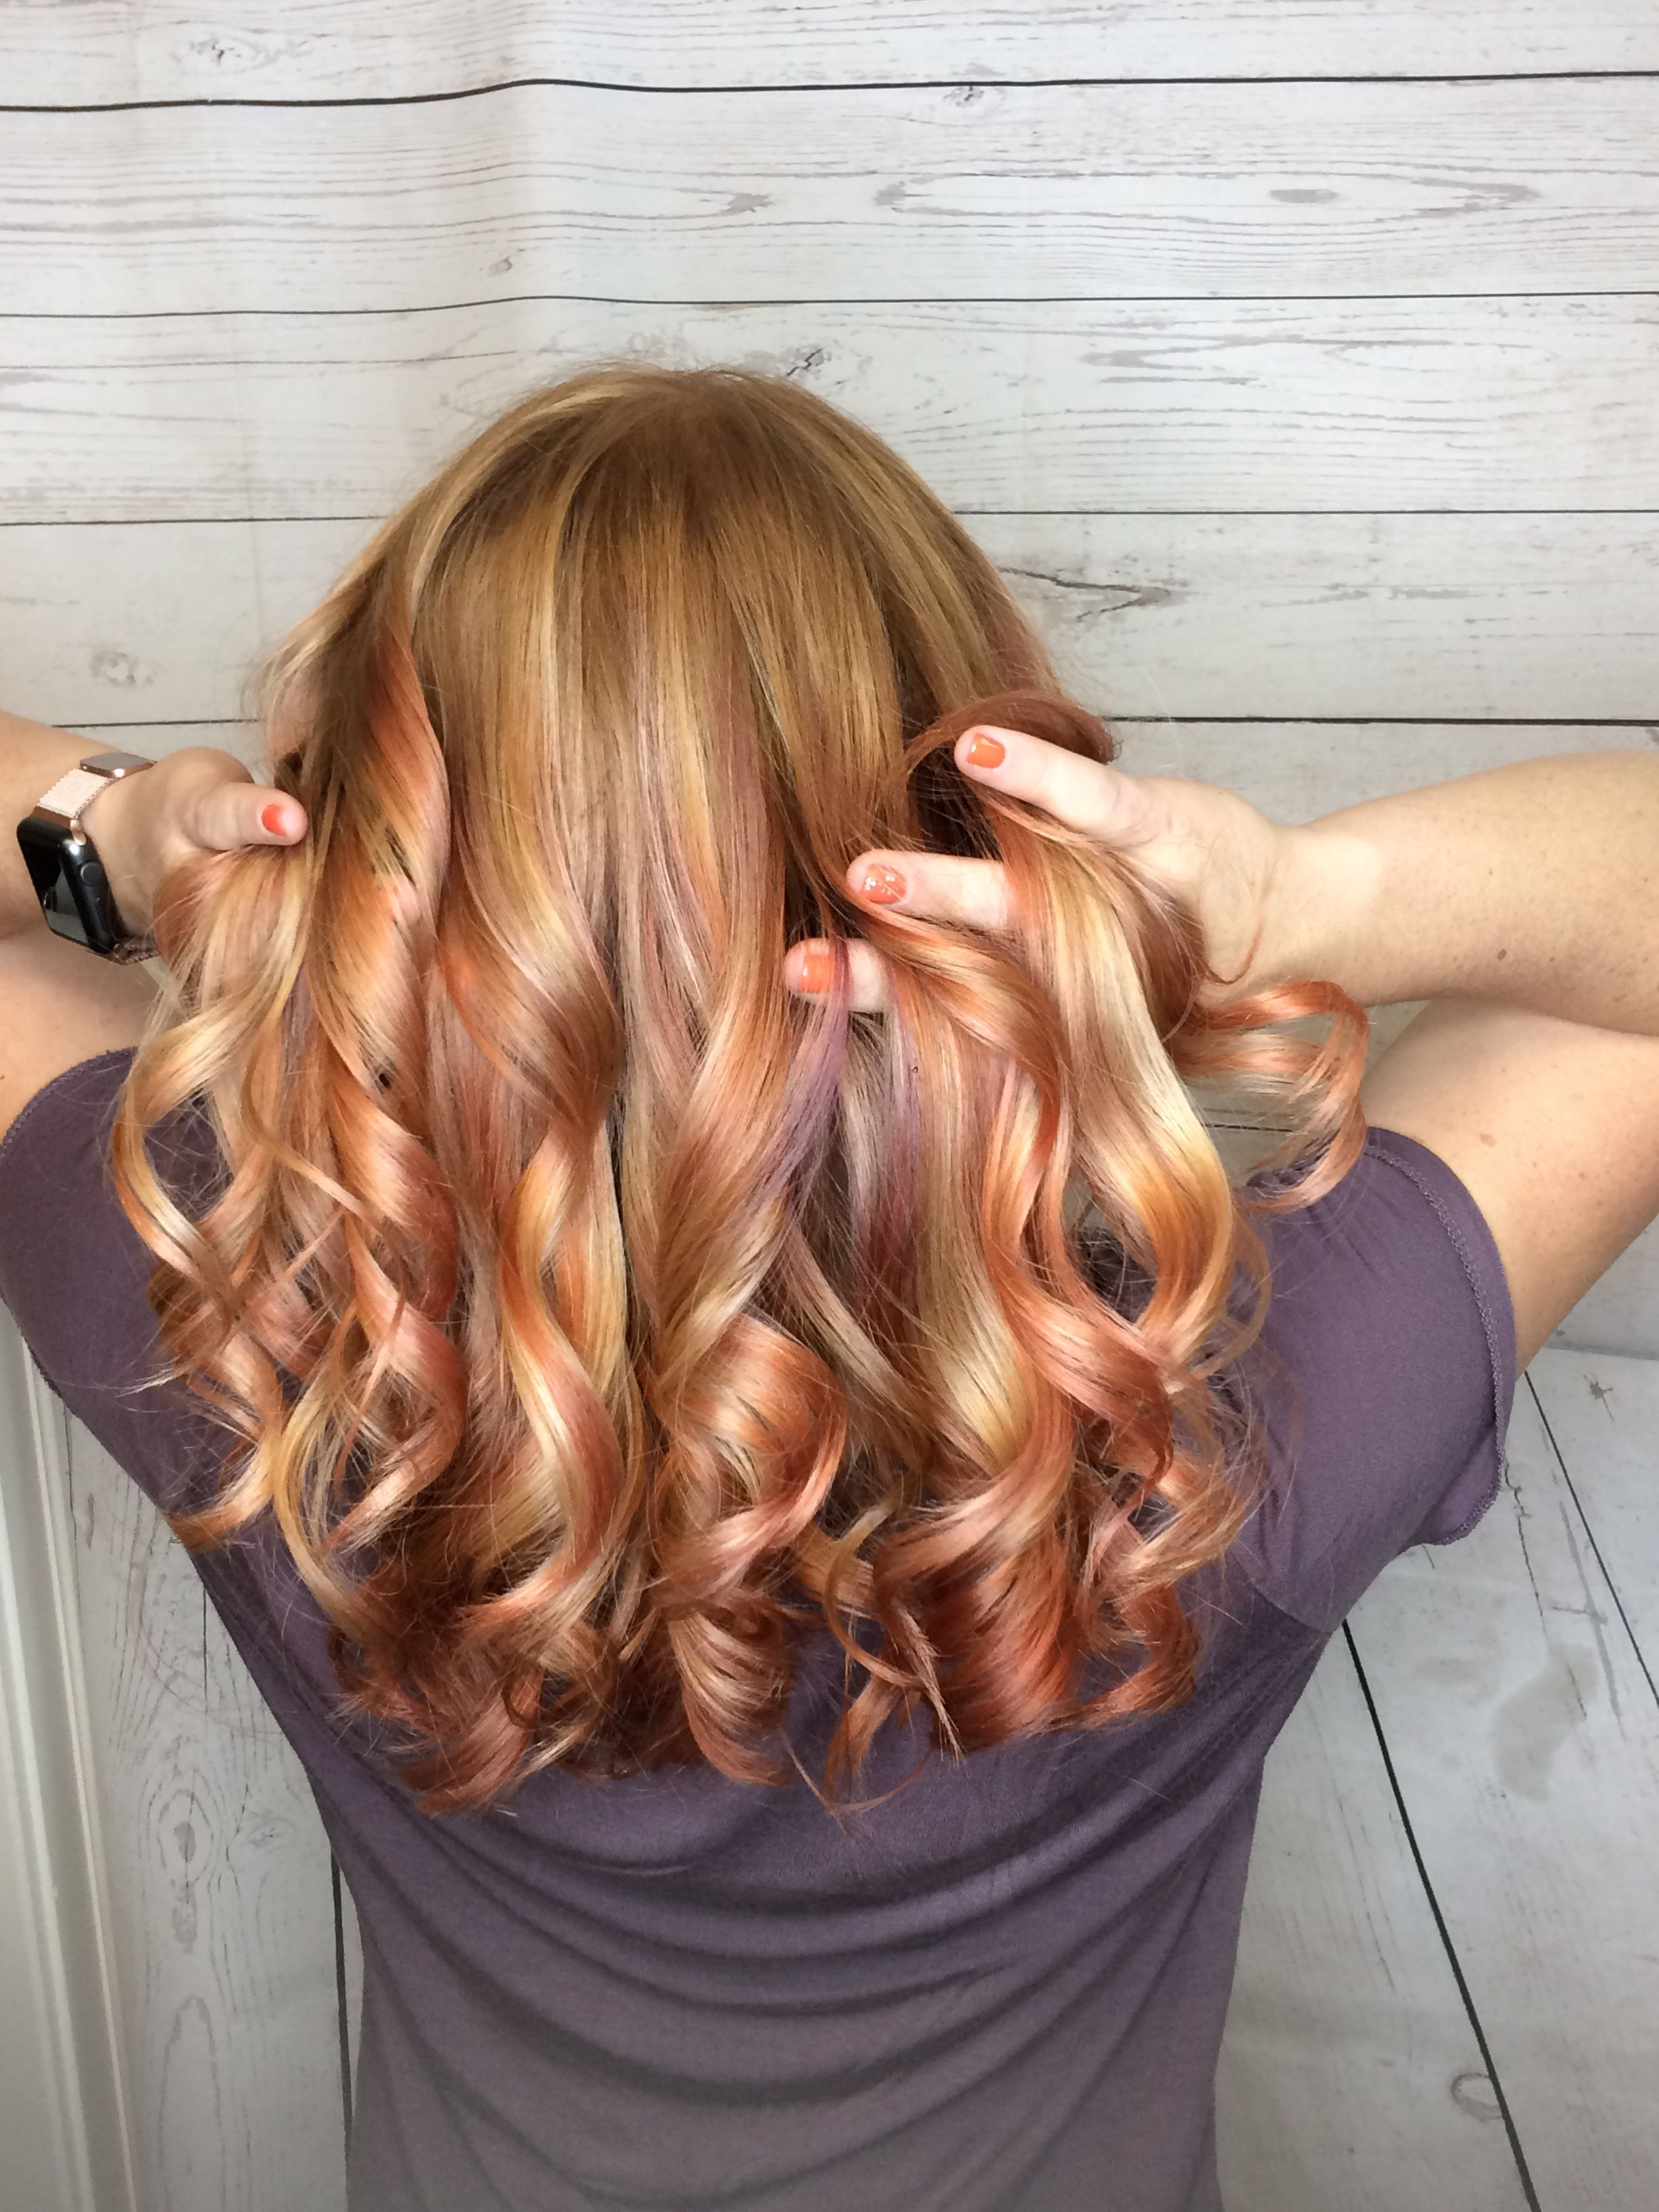 Subtle Springtime Colors Long Hair Styles Hair Salon Hair Styles